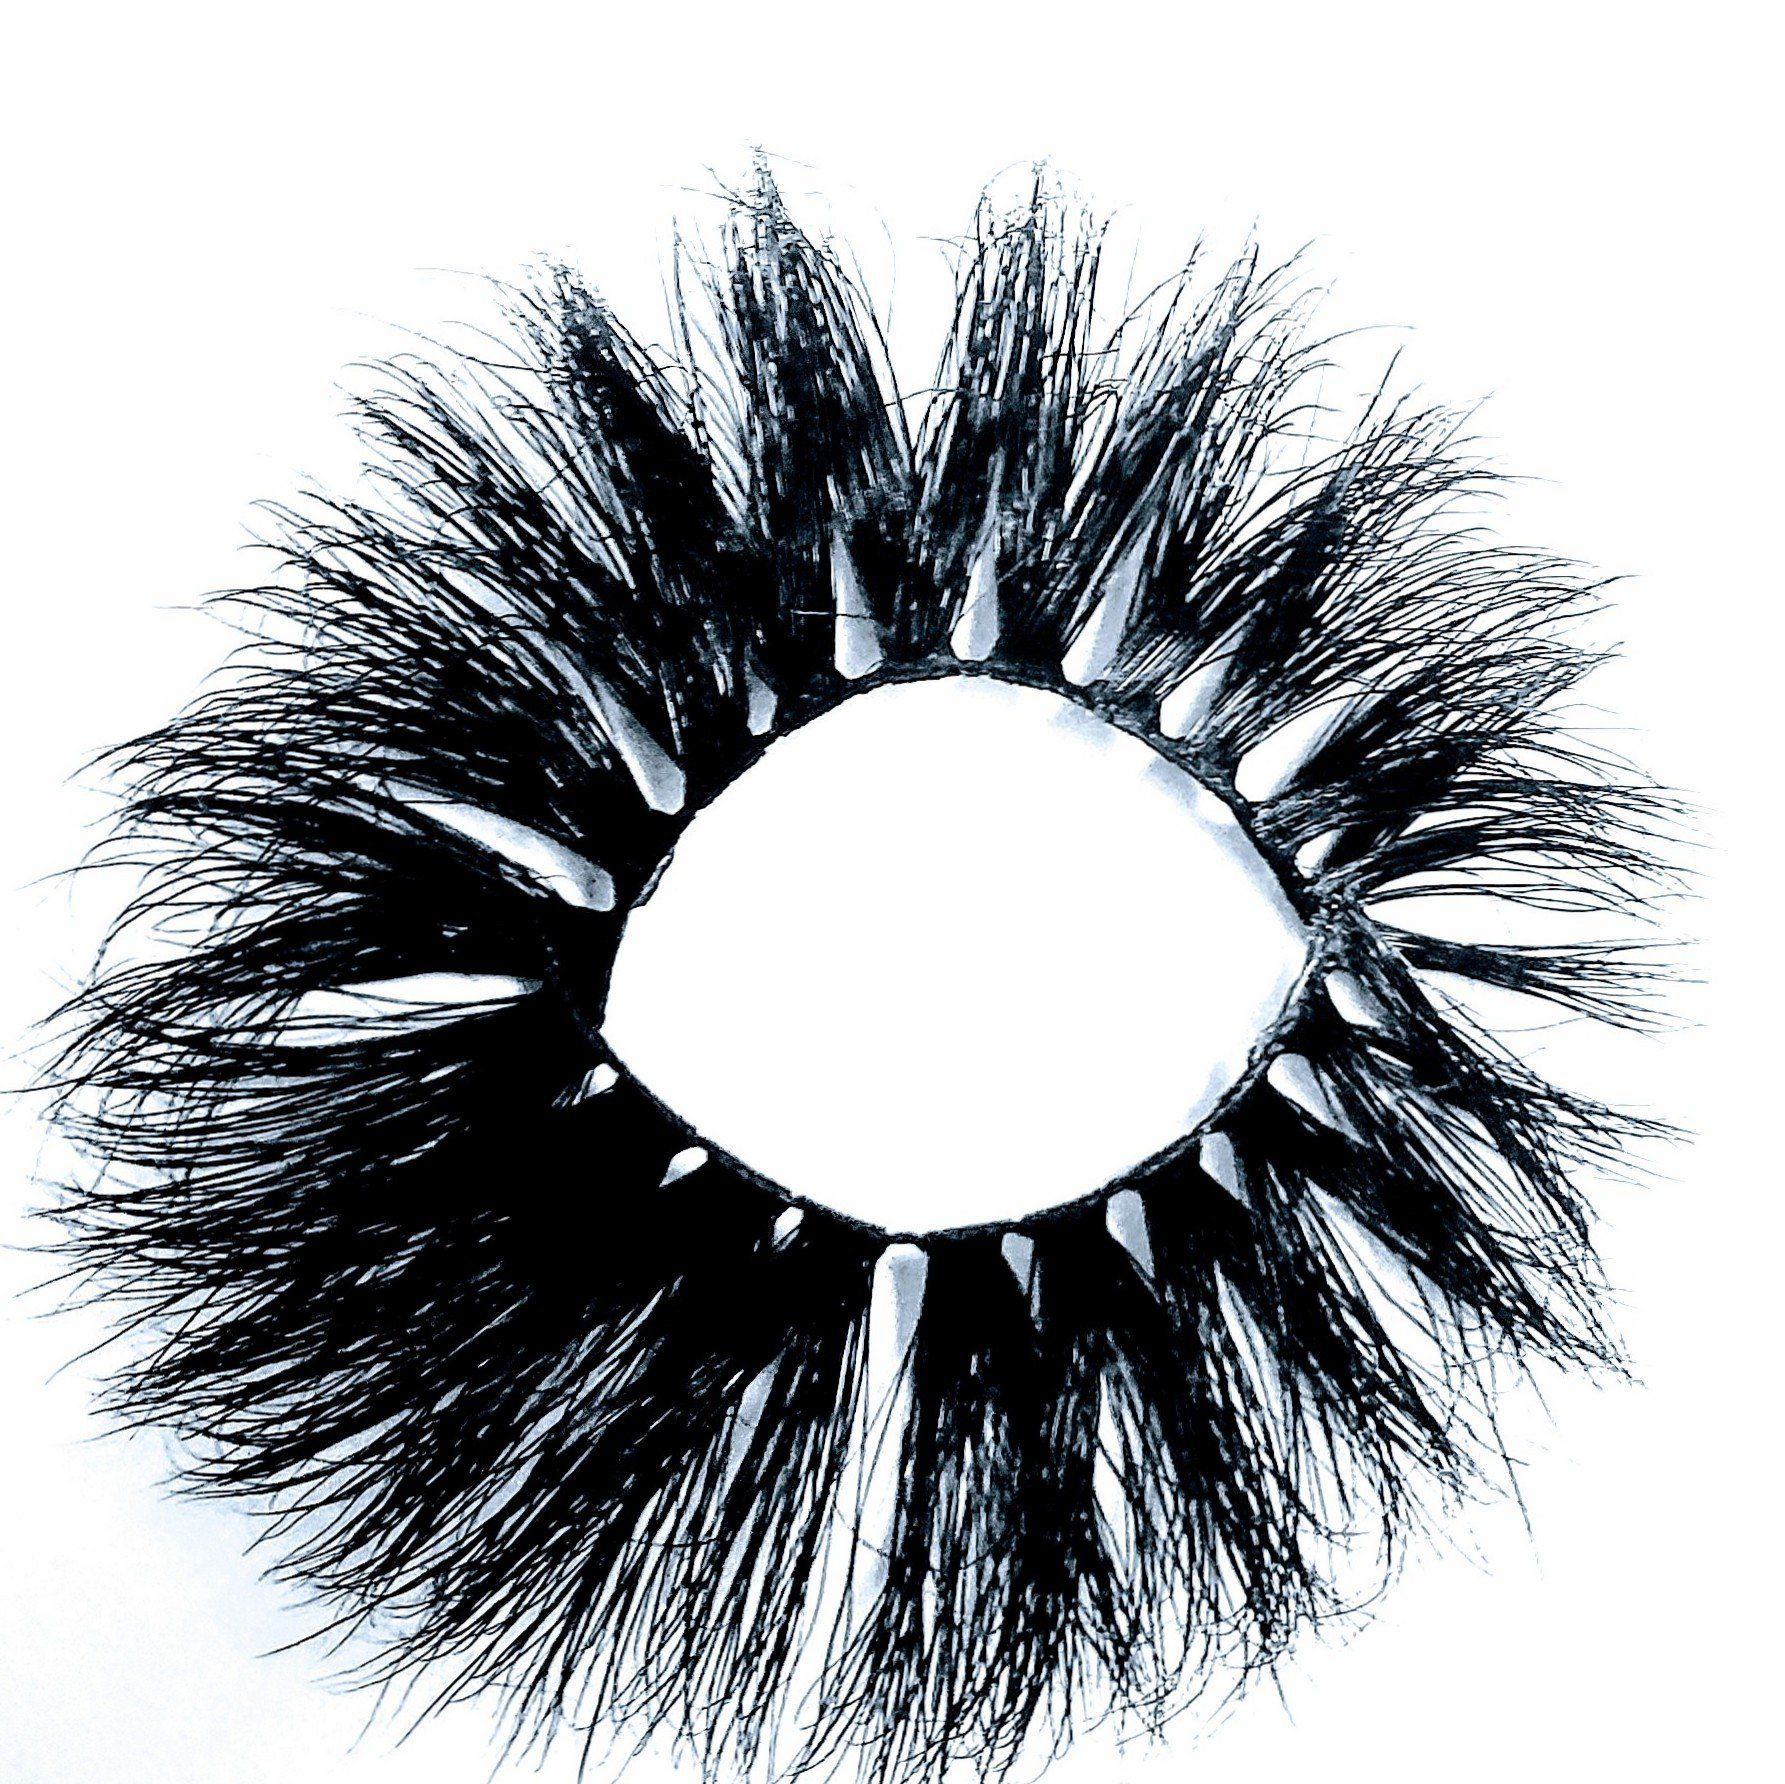 fb55bdb8cc7 Show Girl 5D Mink Lashes in 2019   Products   Lashes, Showgirls, Mink